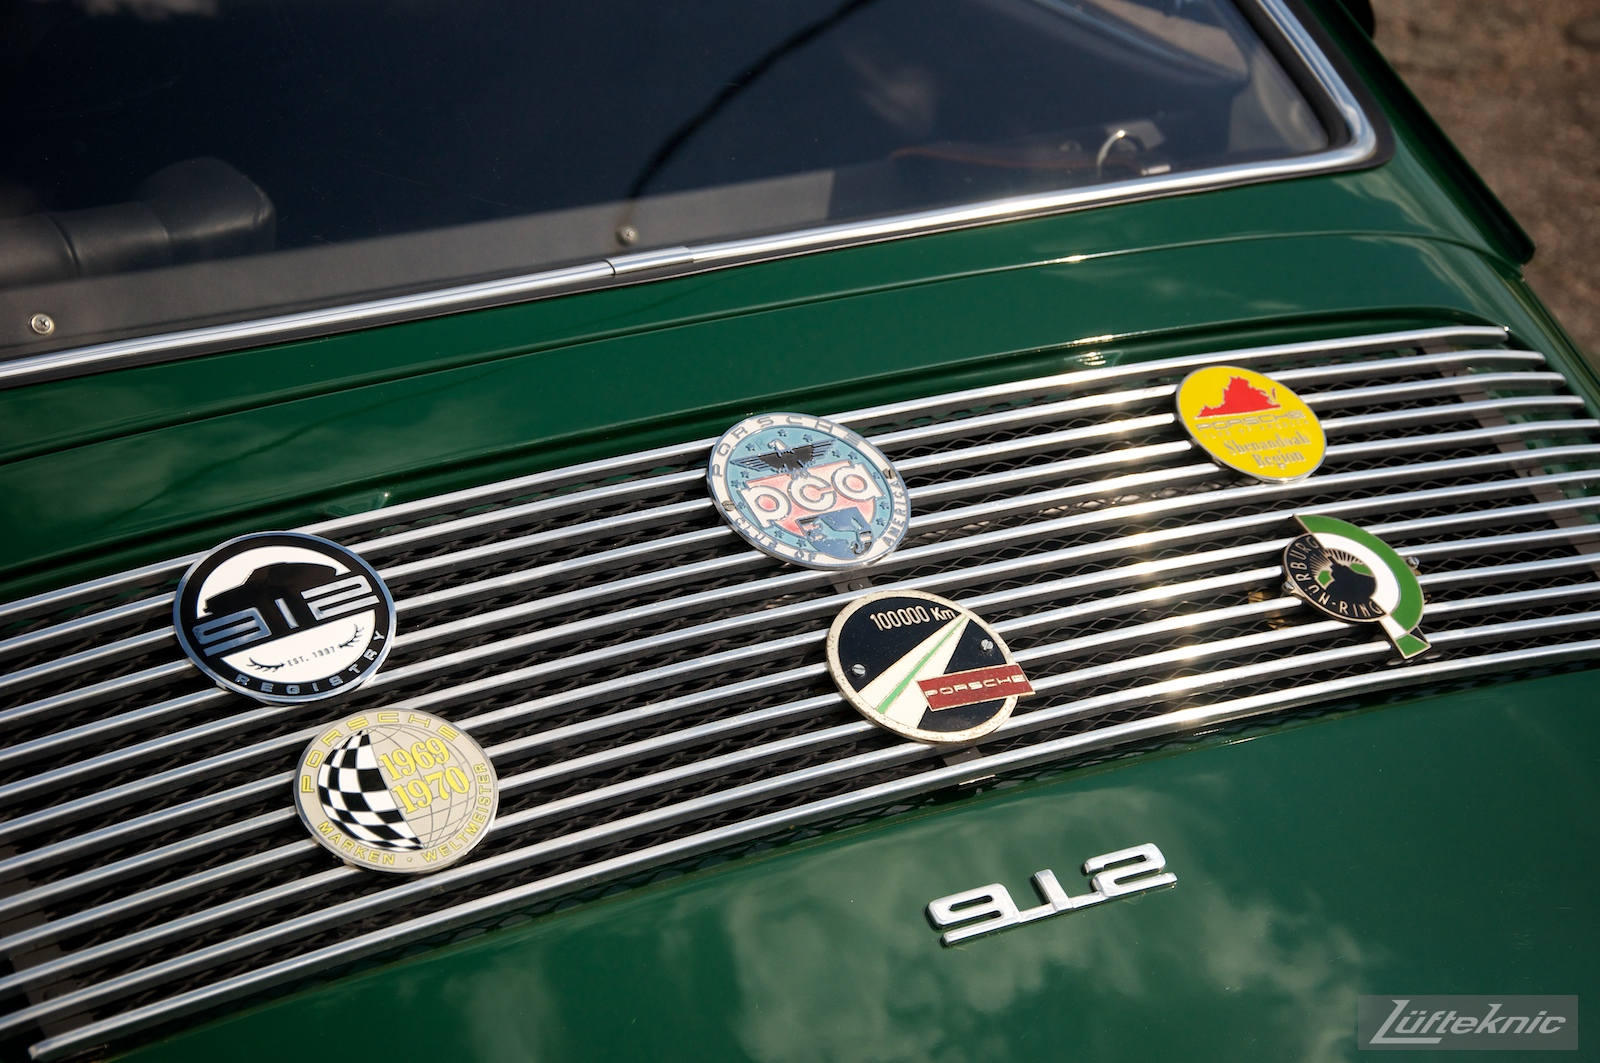 Grill flare on an Irish Green Porsche 912 which has been completely restored by Lufteknic sitting in the shop parking lot.